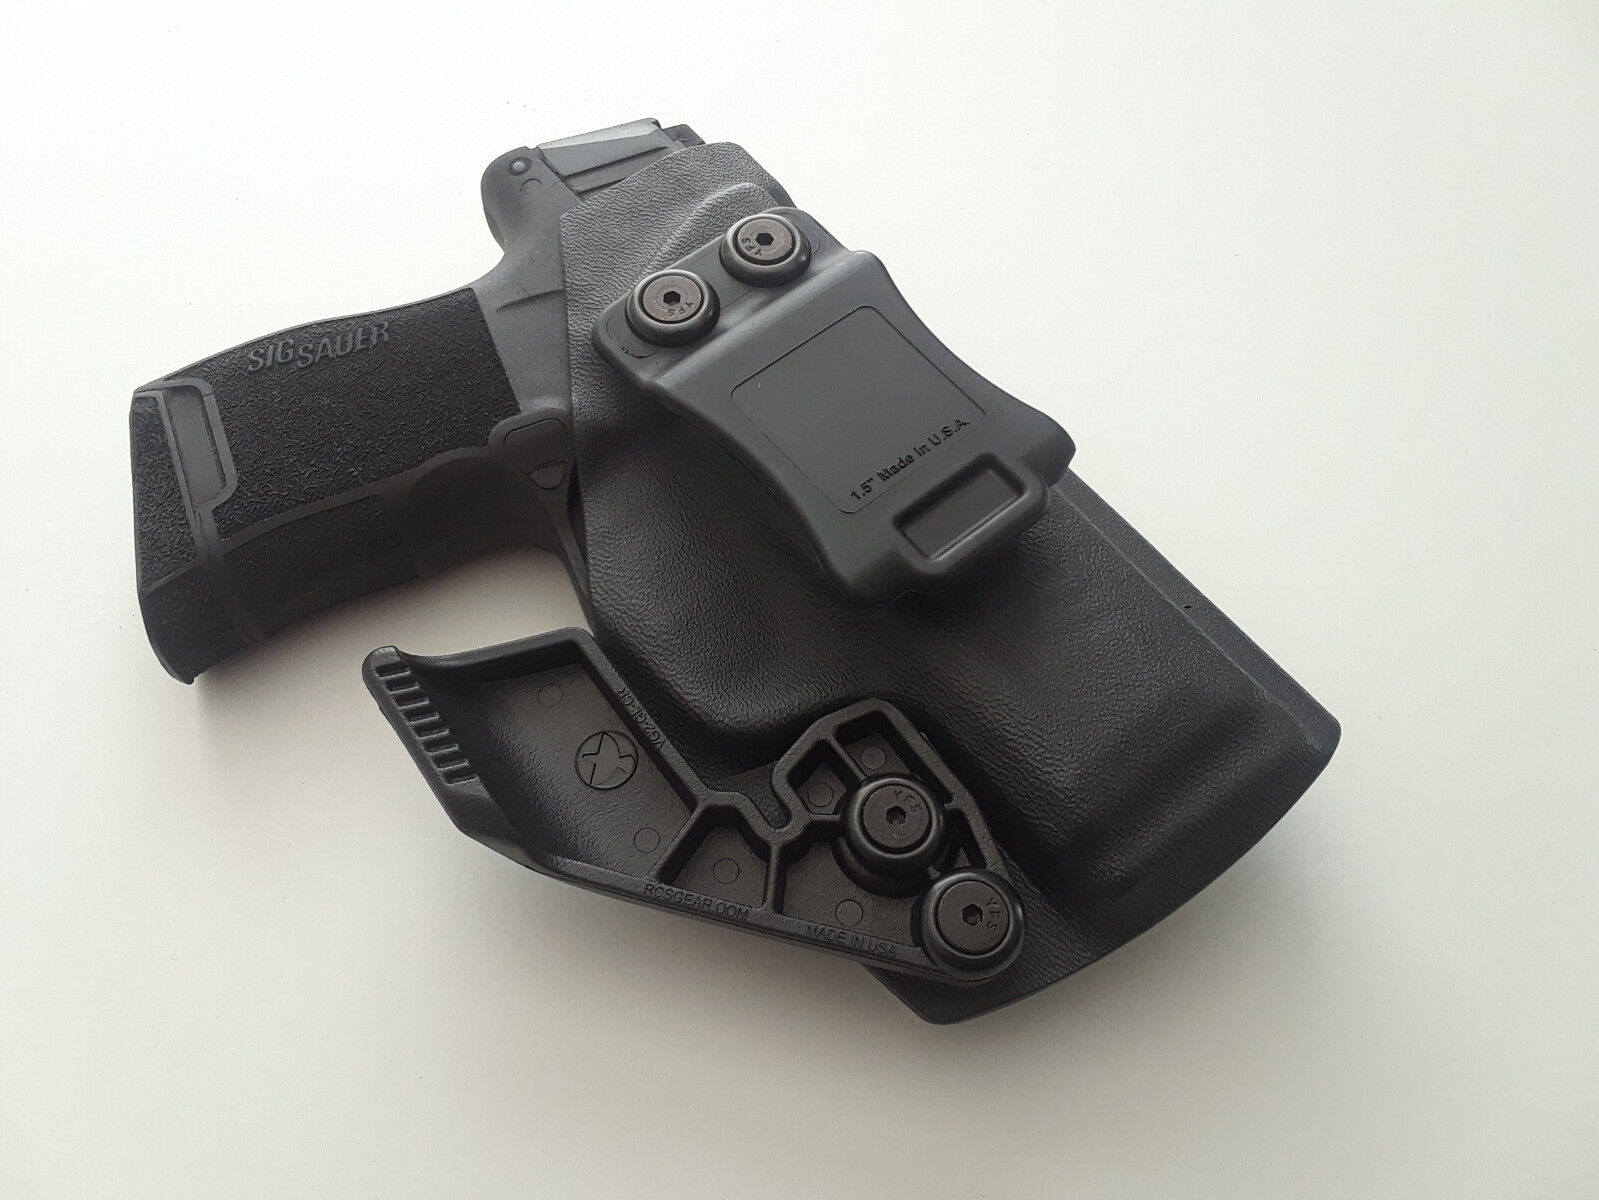 4-in-1 Holster IWB/AIWB Kydex Holster w/ RCS Claw Appendix